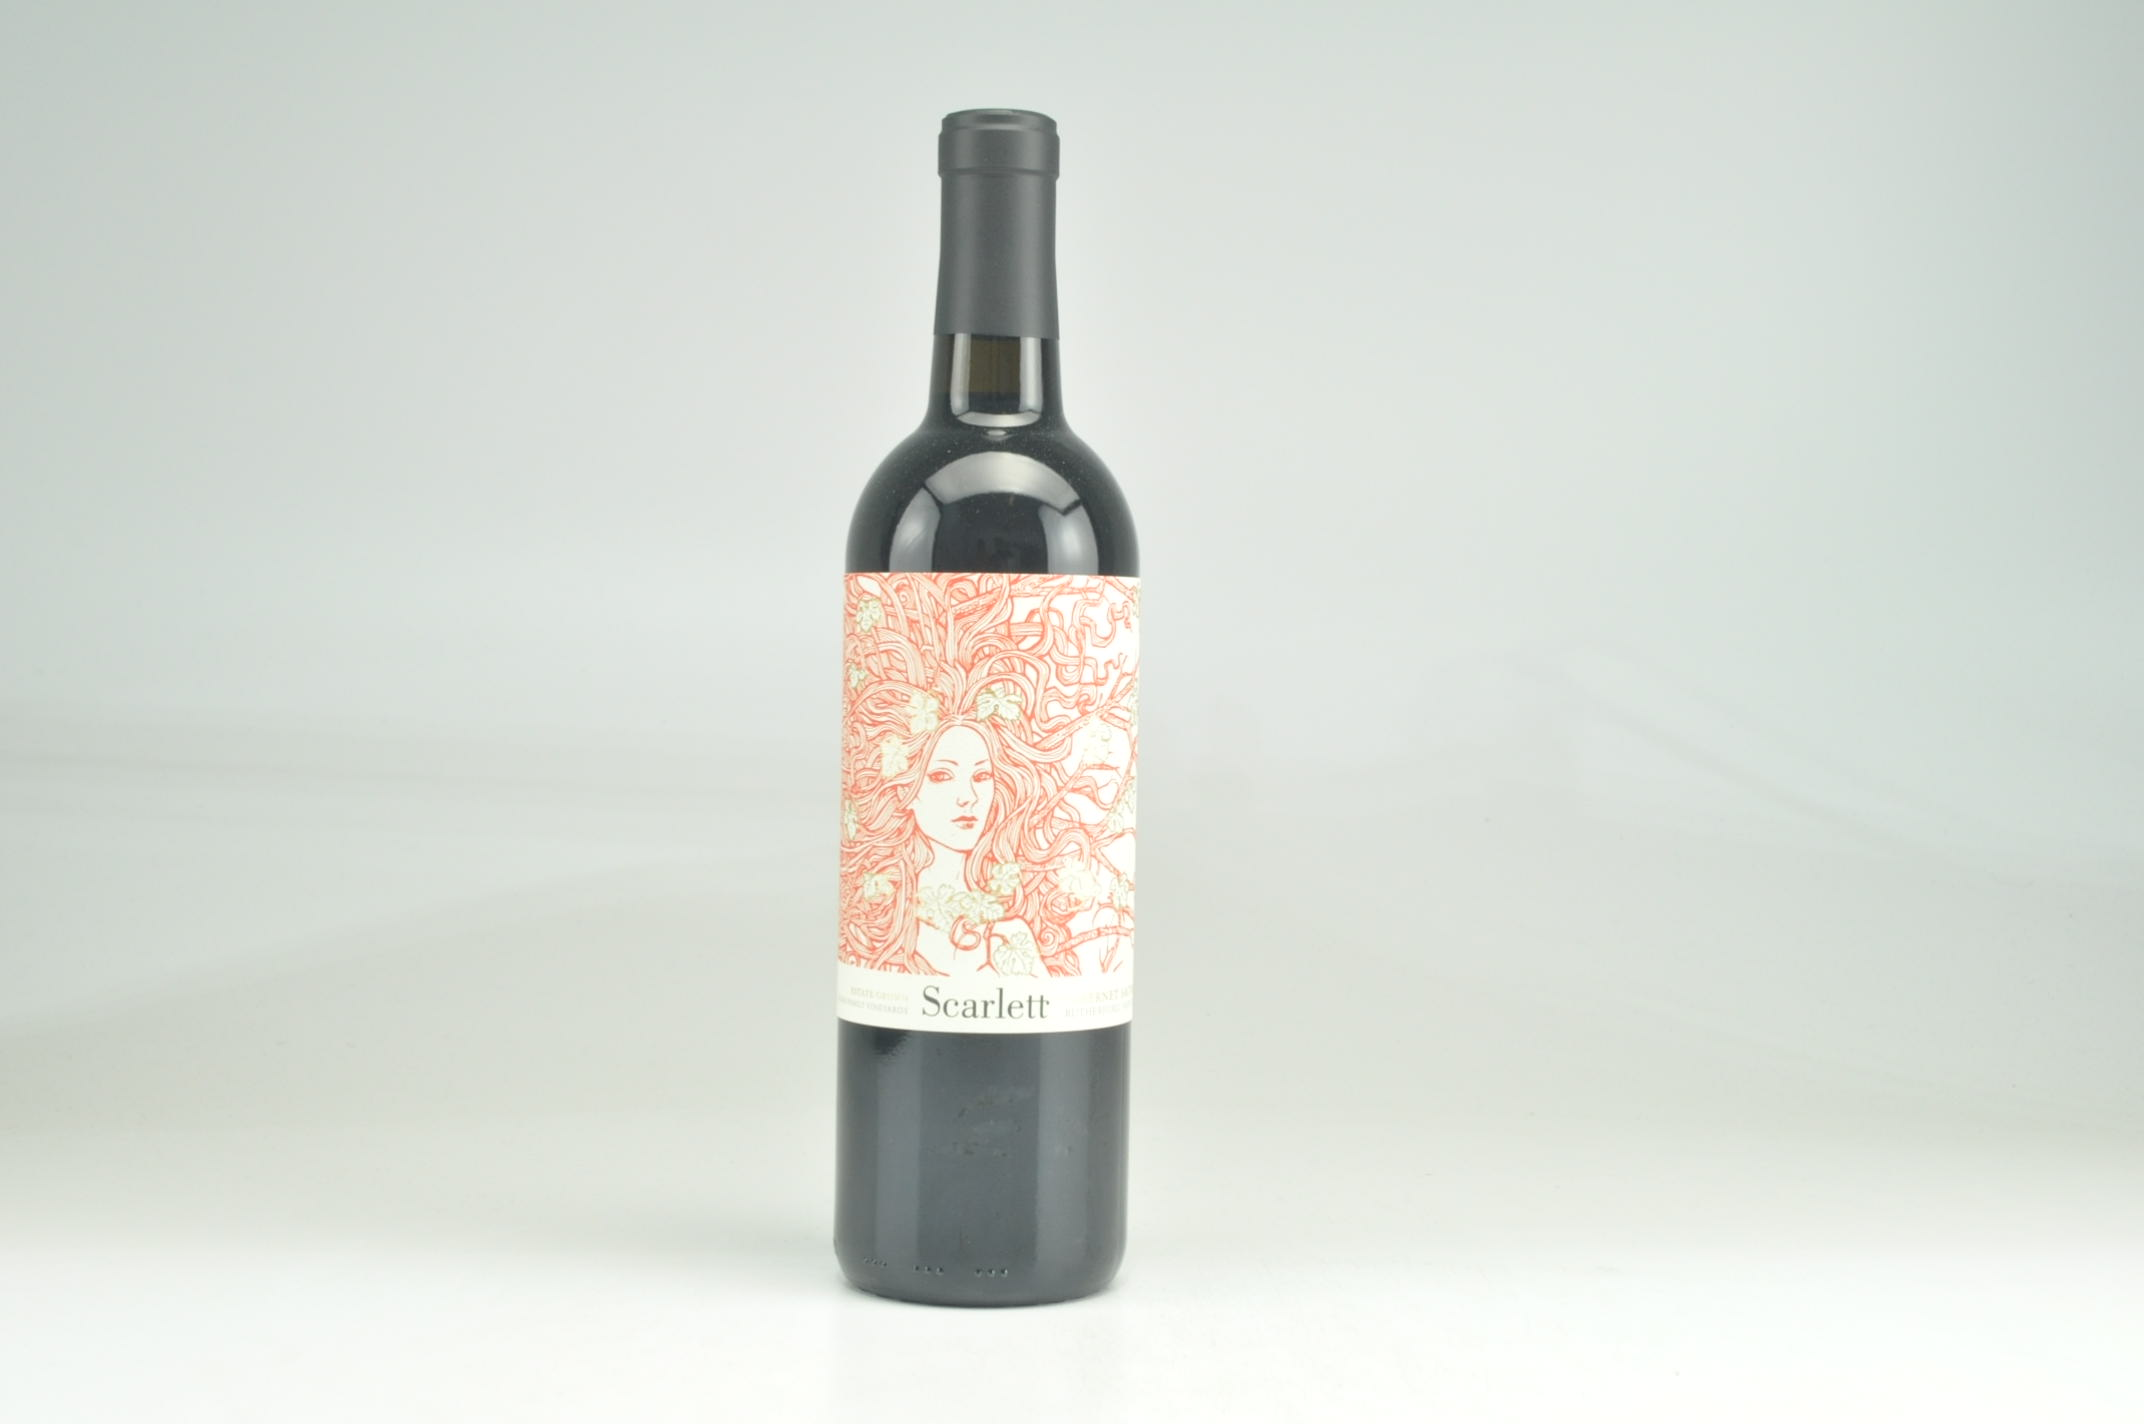 2017 Scarlett Wines Cabernet Sauvignon, Rutherford